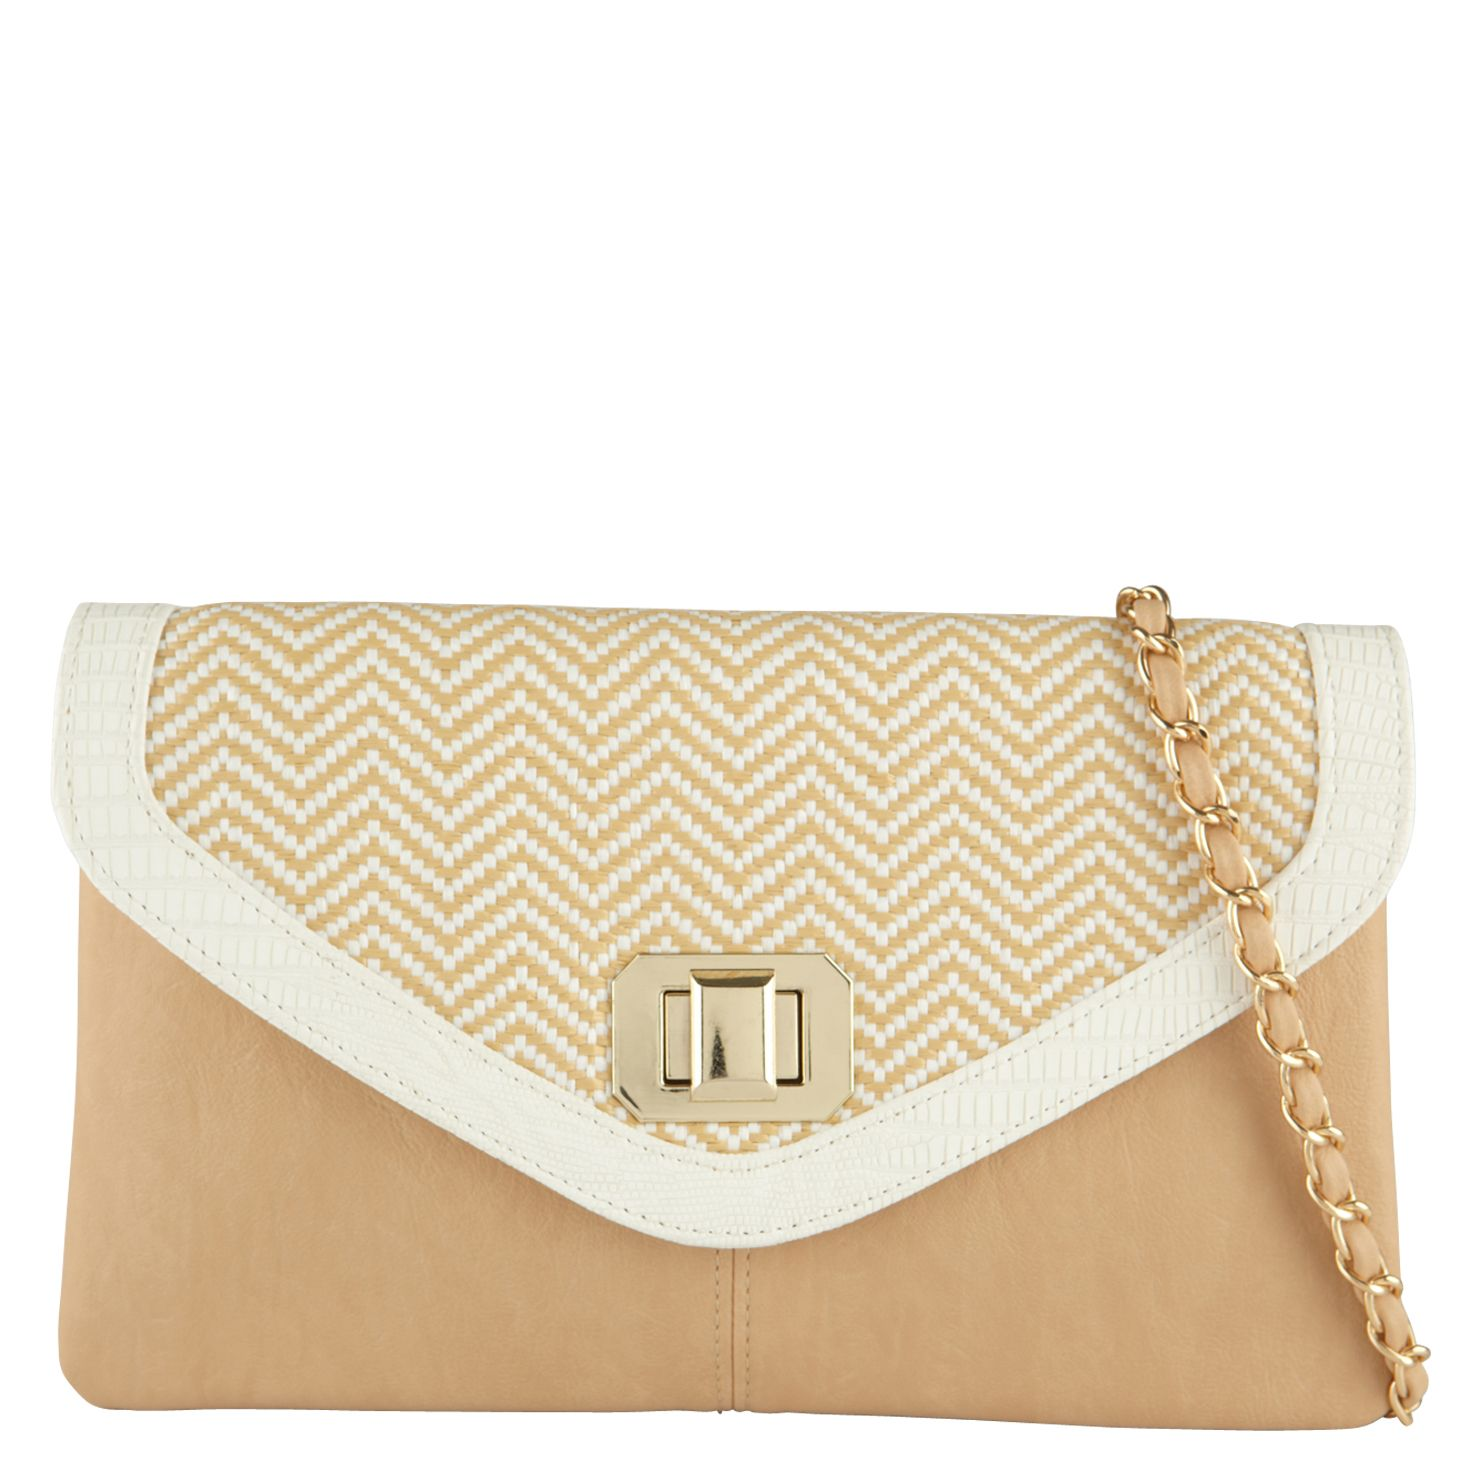 Wantage clutch shoulder bag